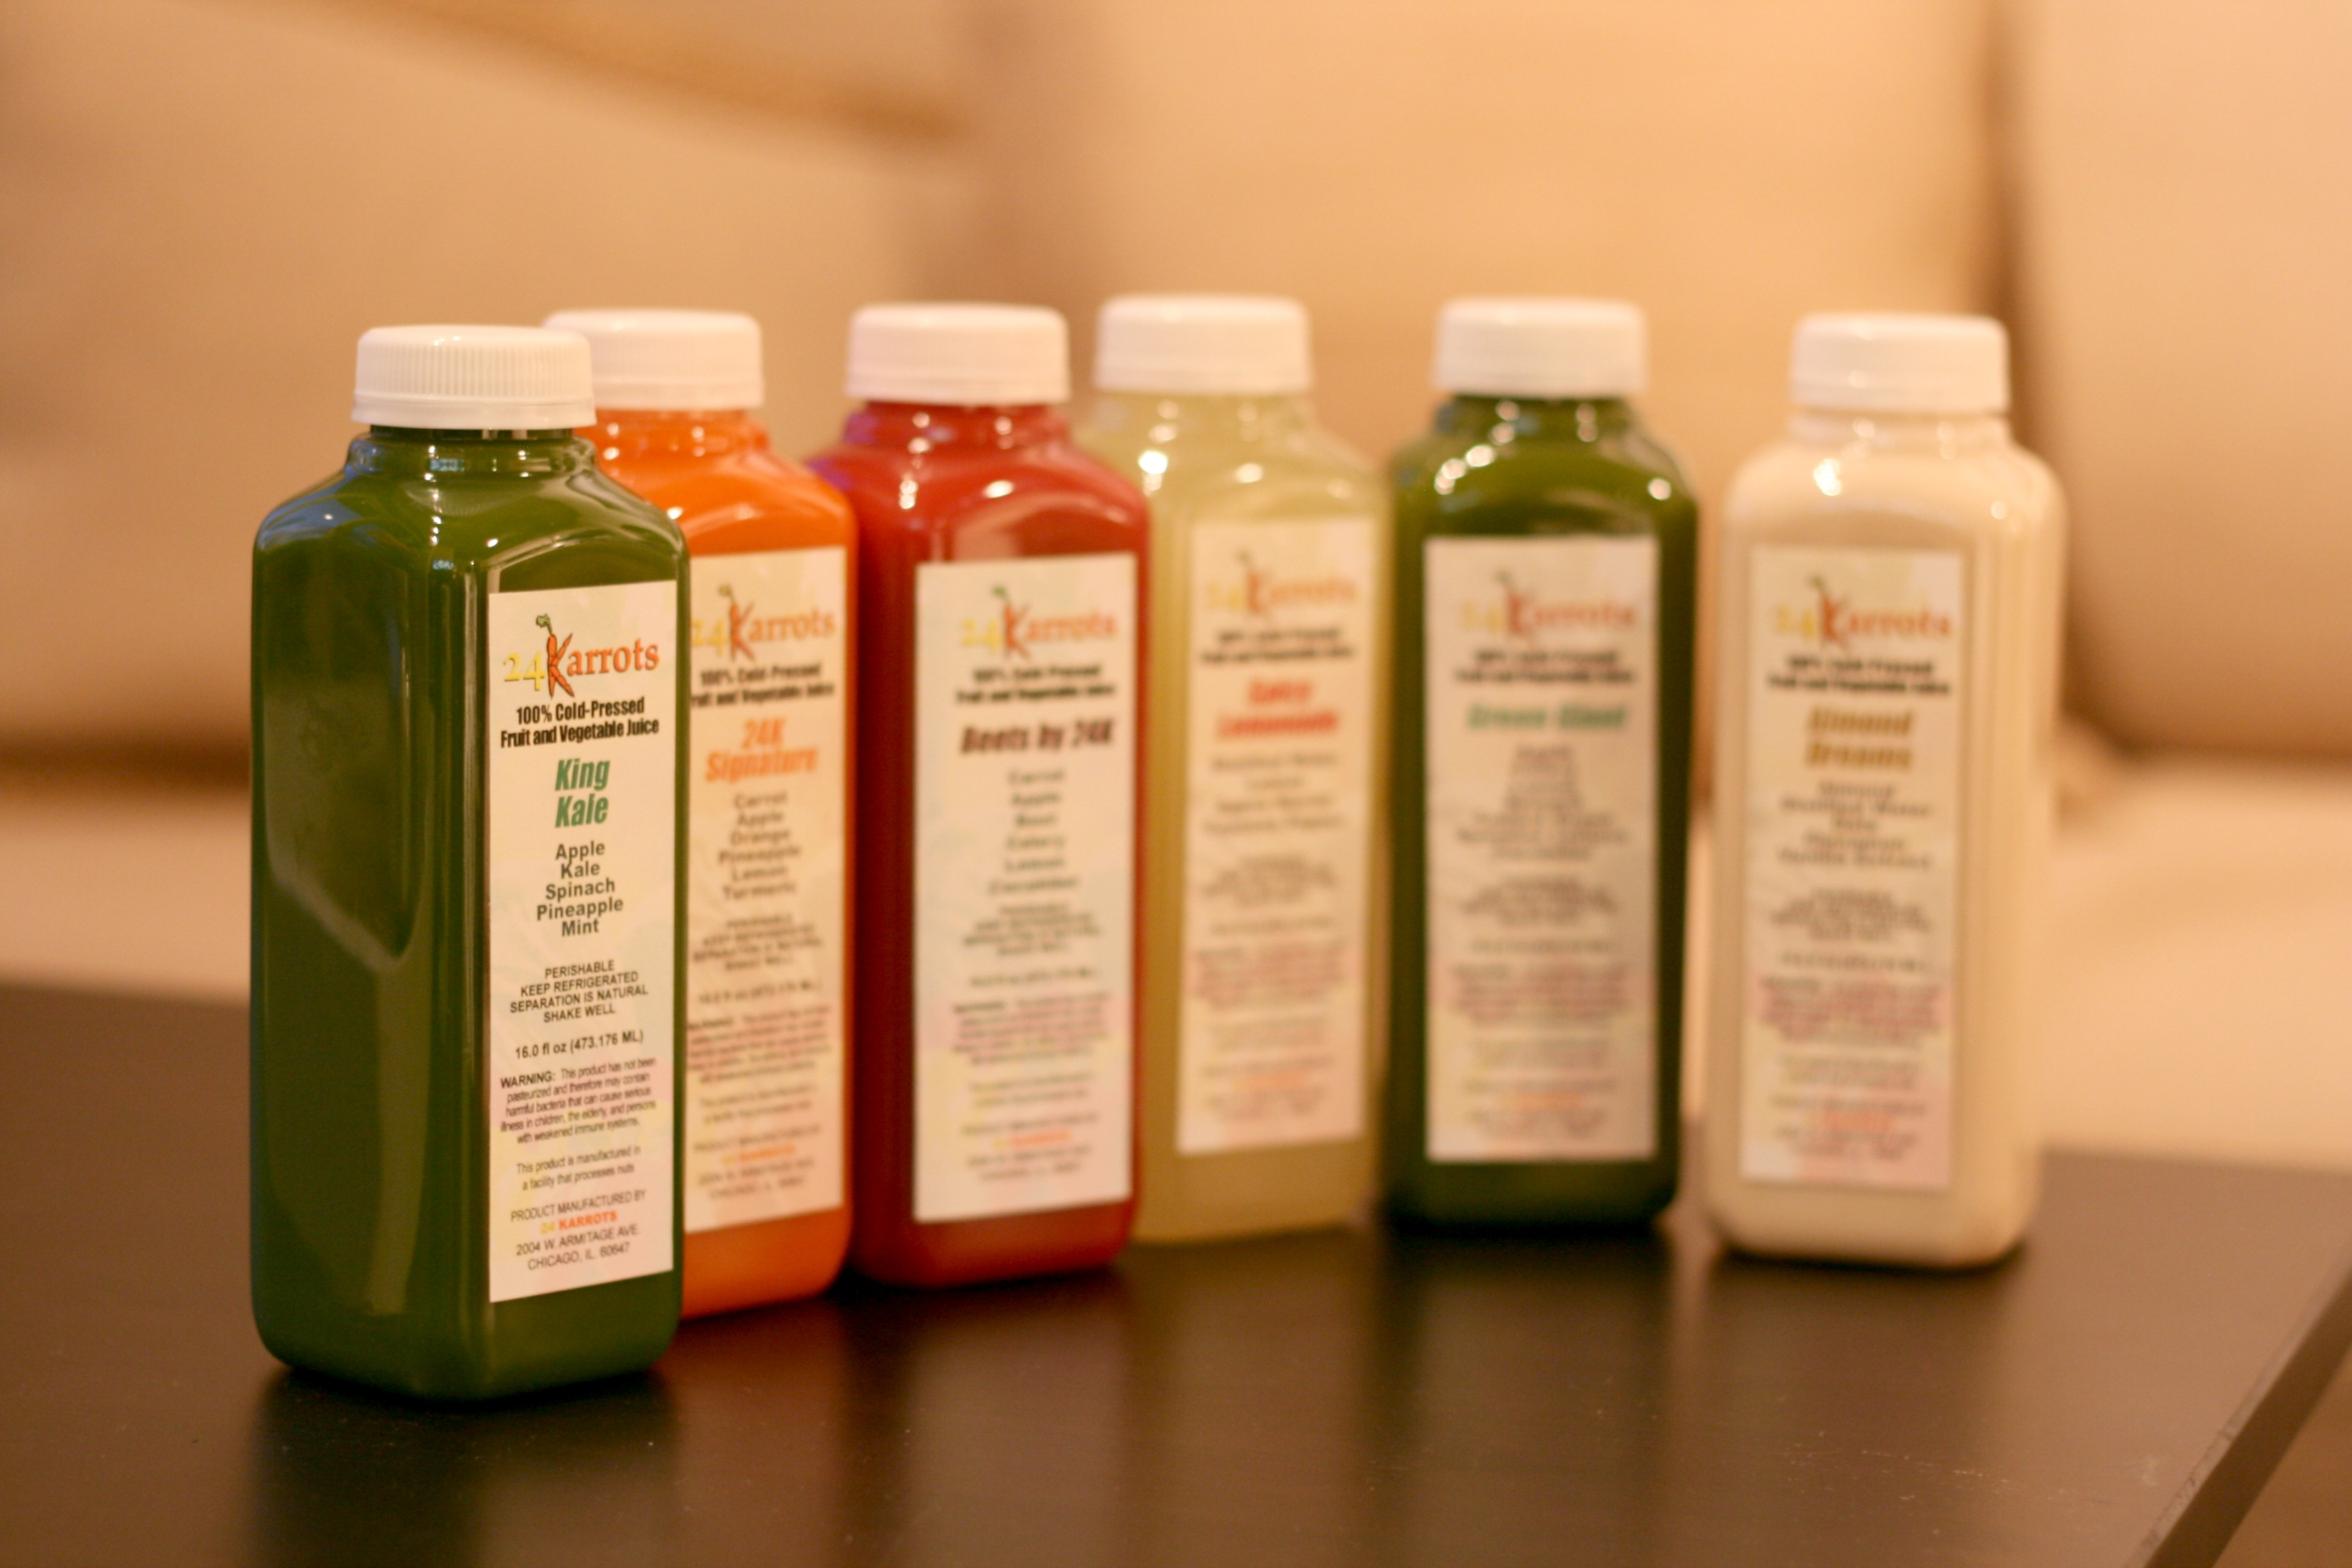 3 Day Juice Cleanse with 24 Karrots - The Kissing Booth Blog